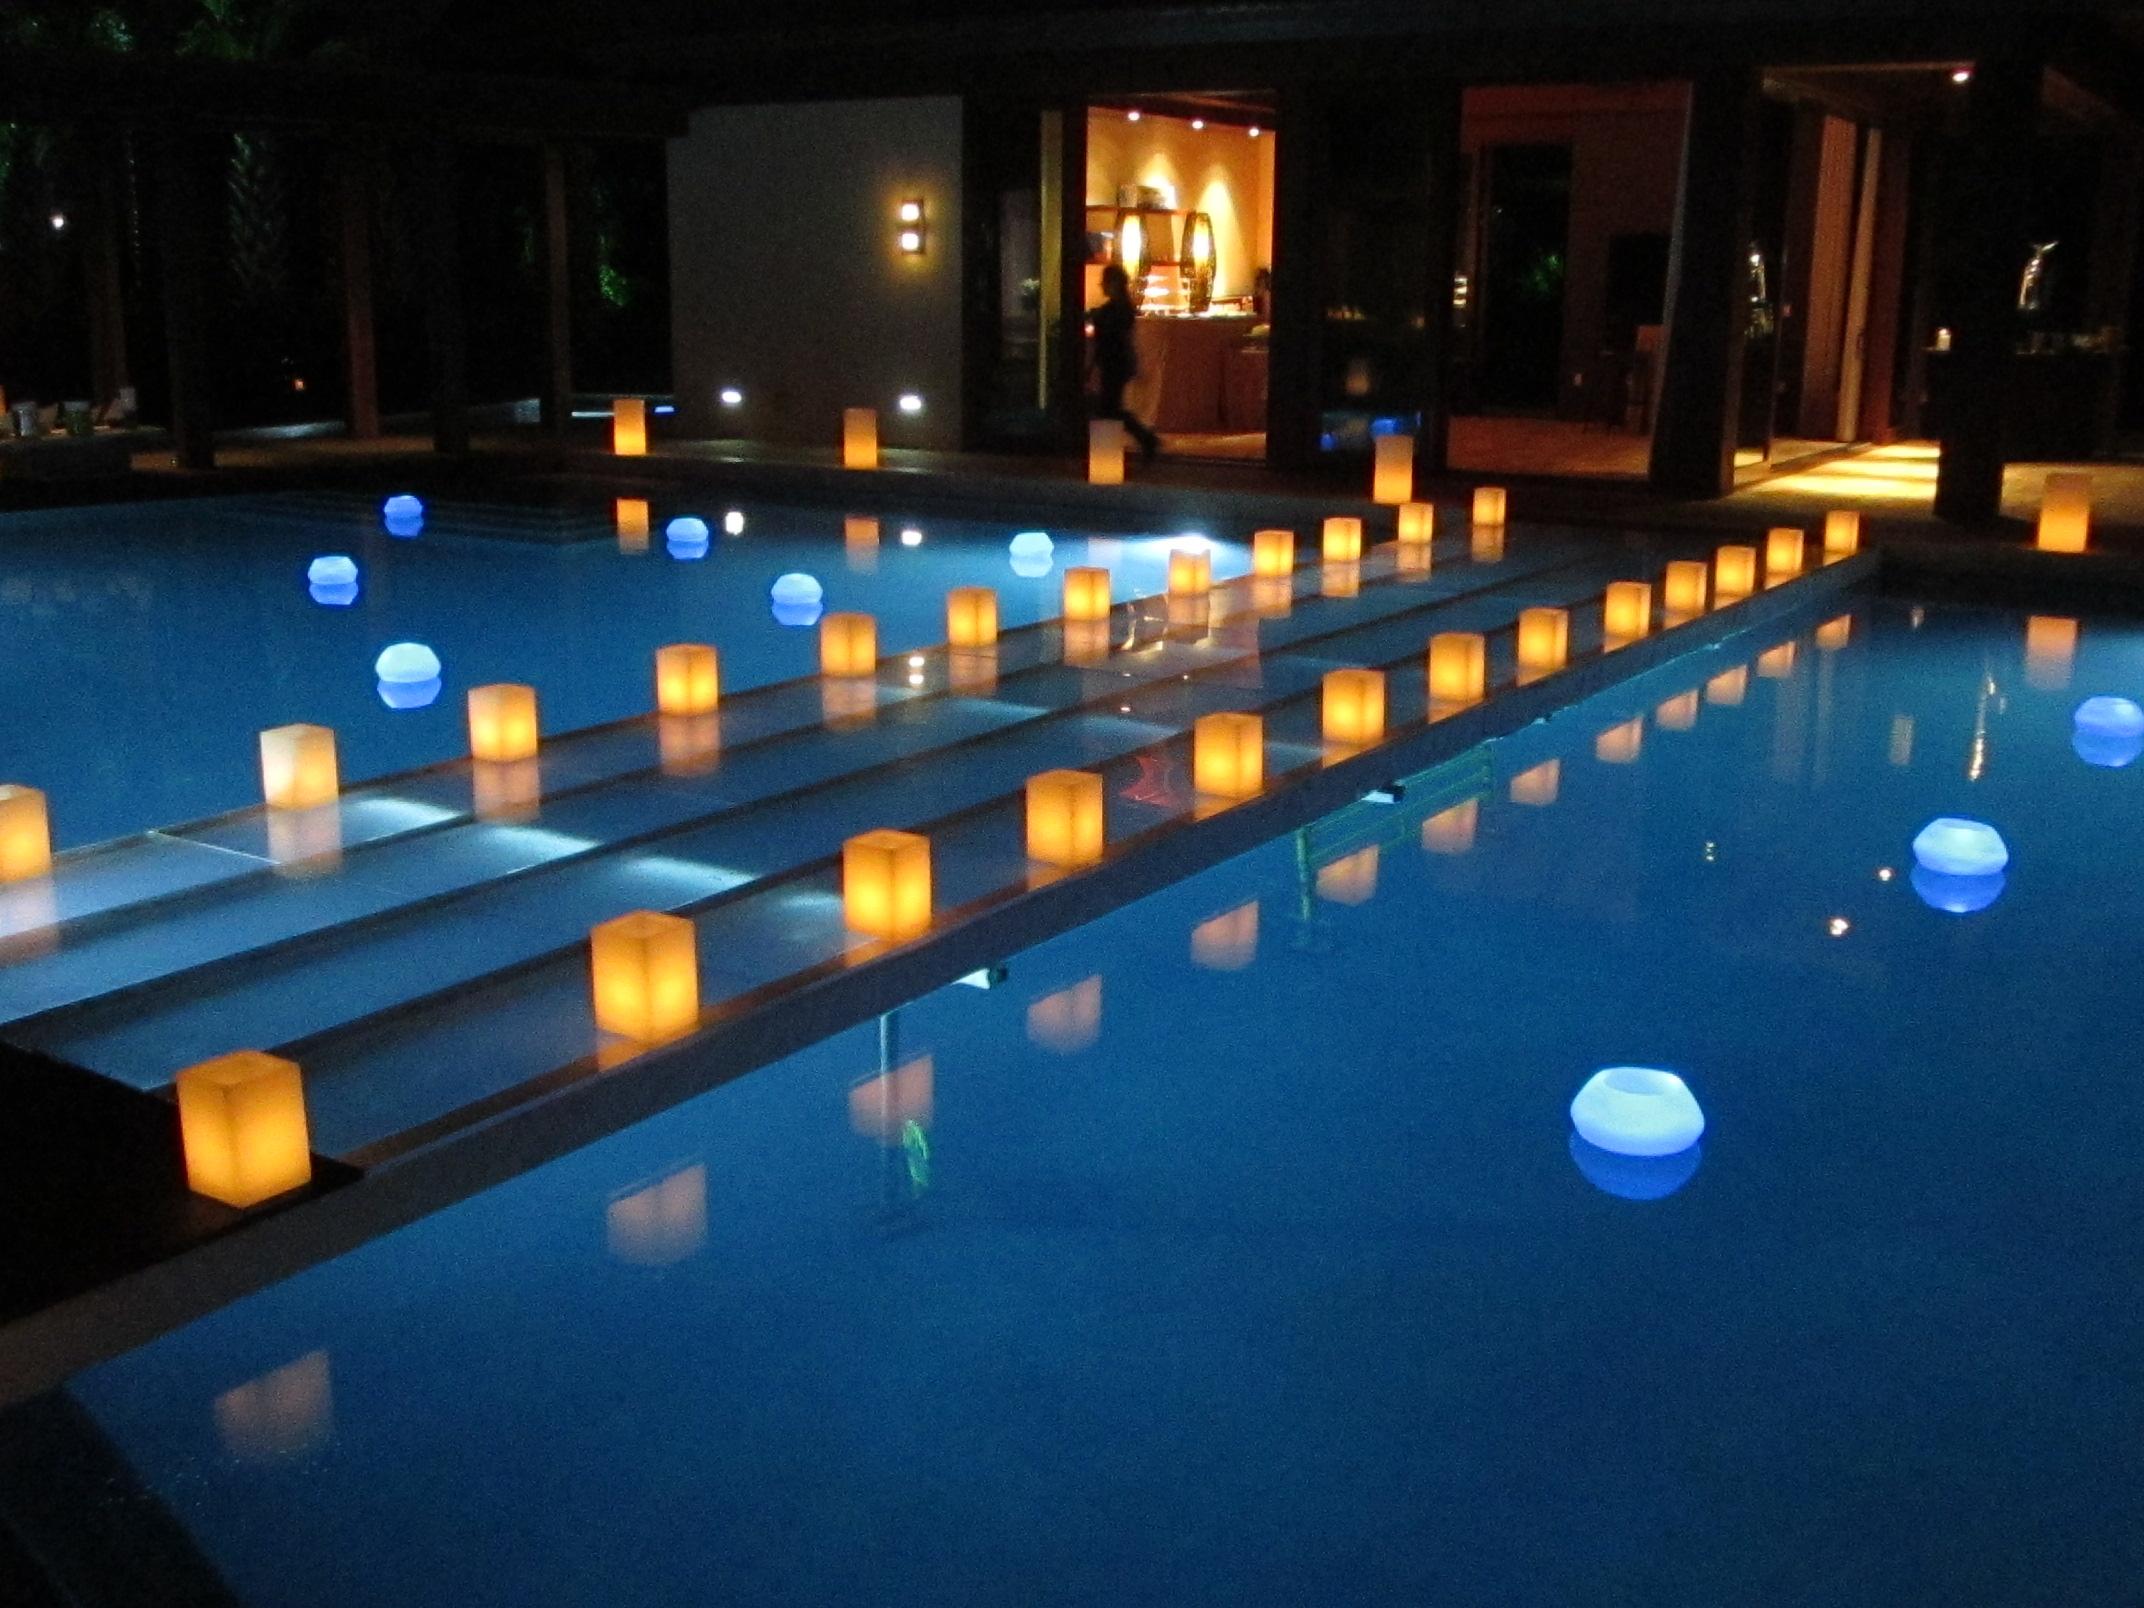 Bridge over the pool with candles